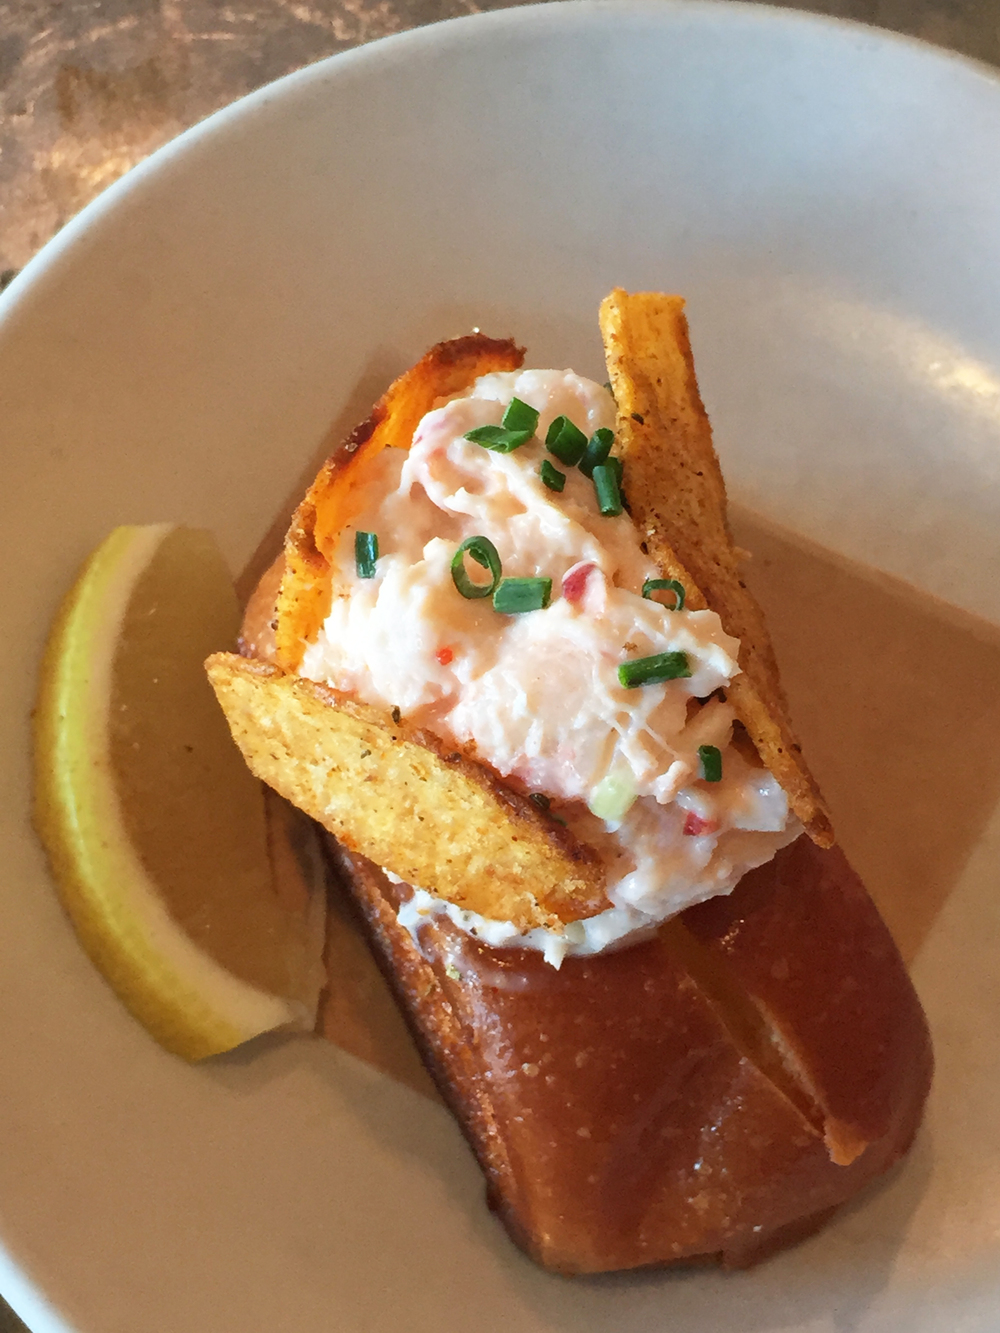 Lobster Roll with Celery and Lemon Aioli.